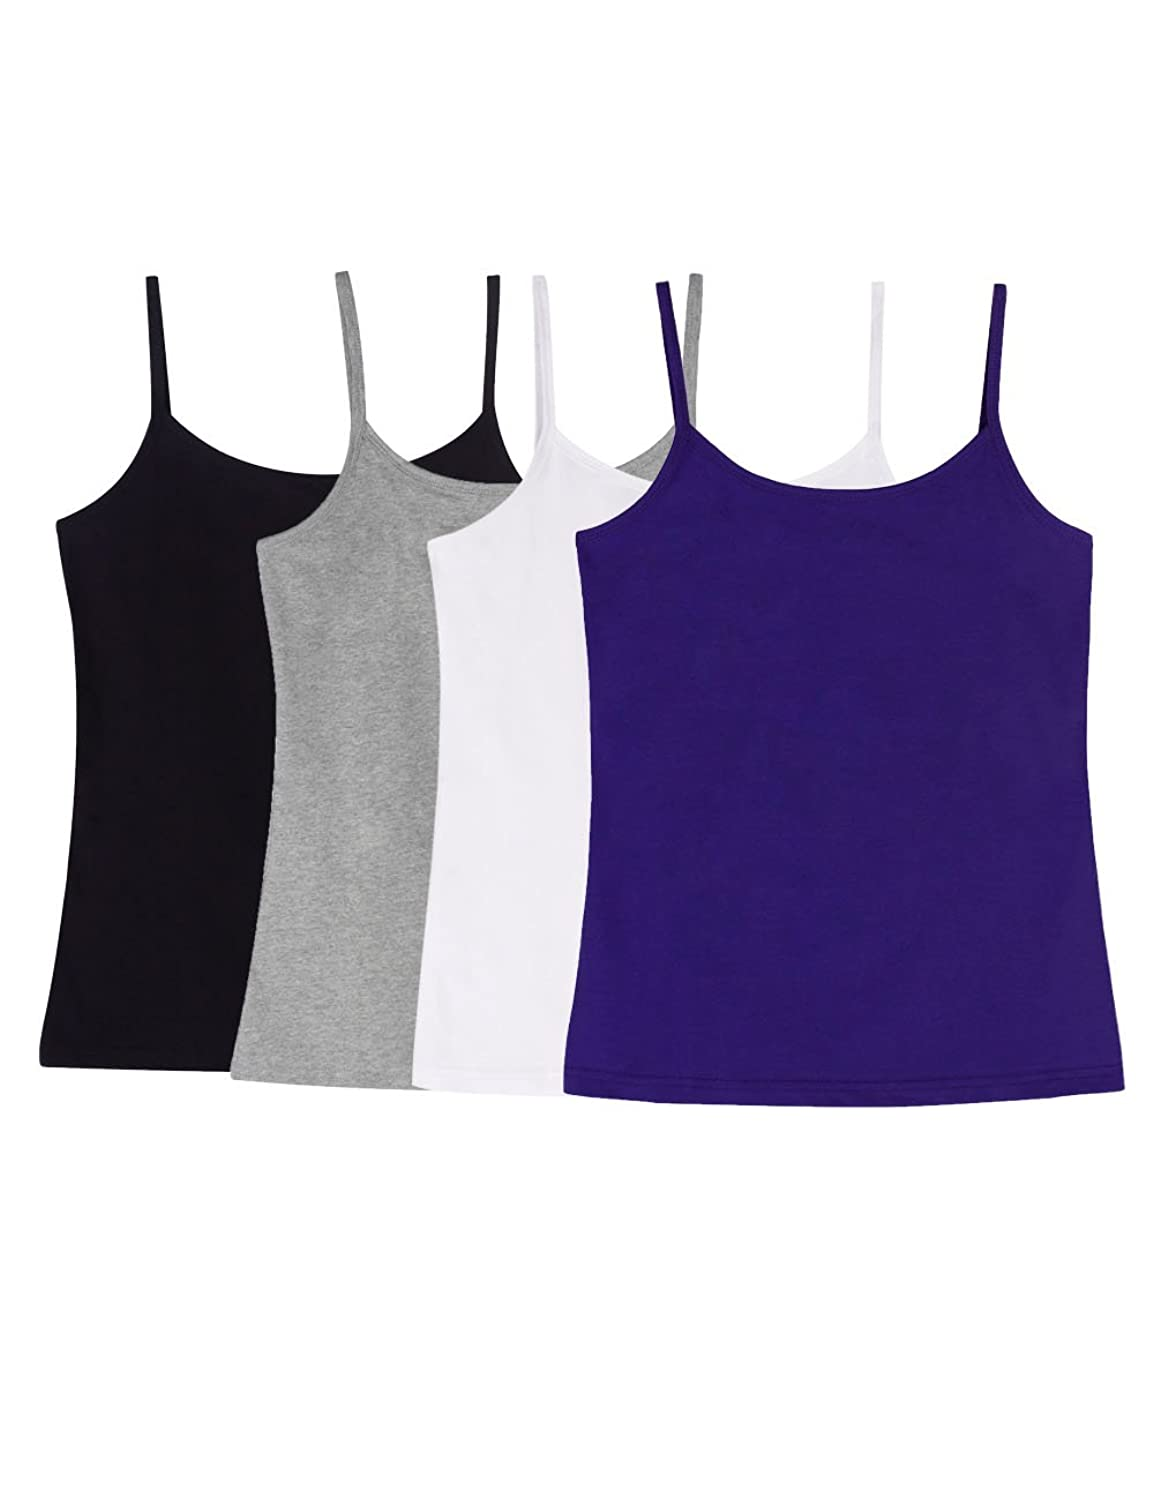 ADAMARIS Cotton Camisoles for Women Tank Tops for Women Pack Camis Vest White Red